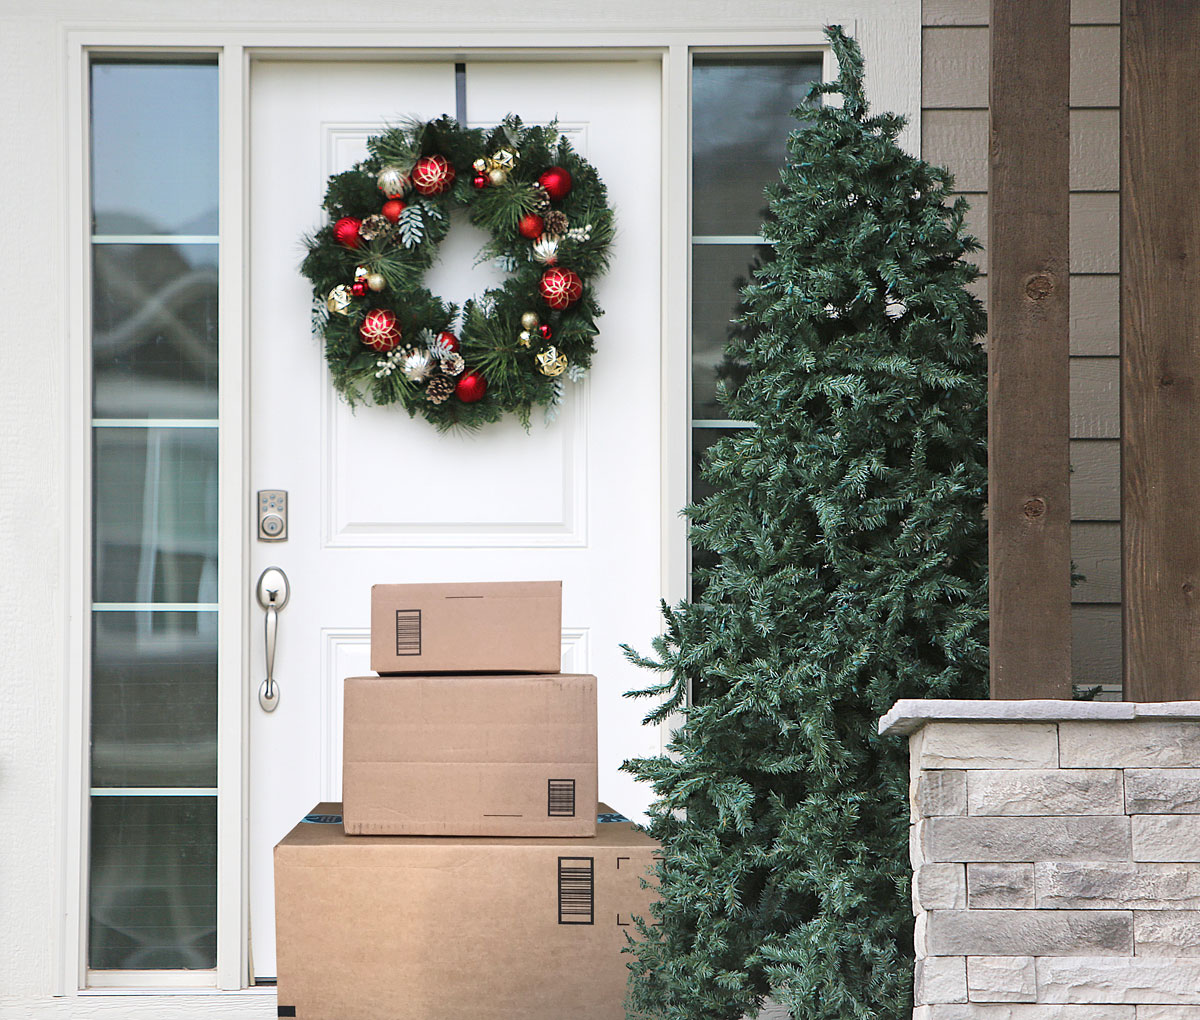 The No-Stress Holiday Moving Guide for Seniors